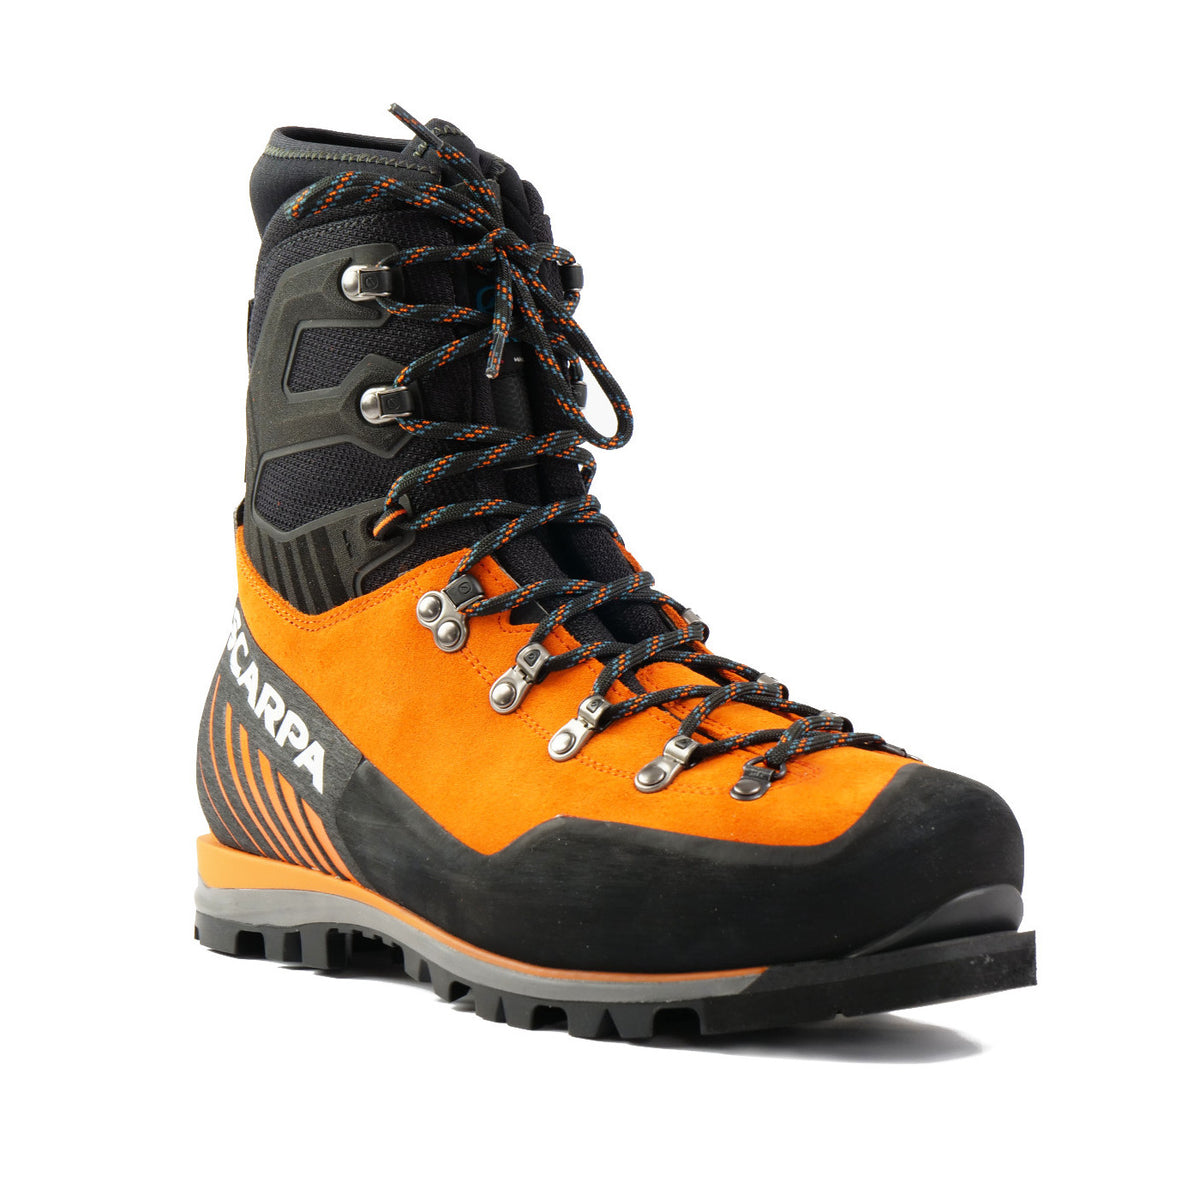 Front view Scarpa Mont Blanc Pro GTX with orange Perwanger outer and black rubber and flexible sock and tongue